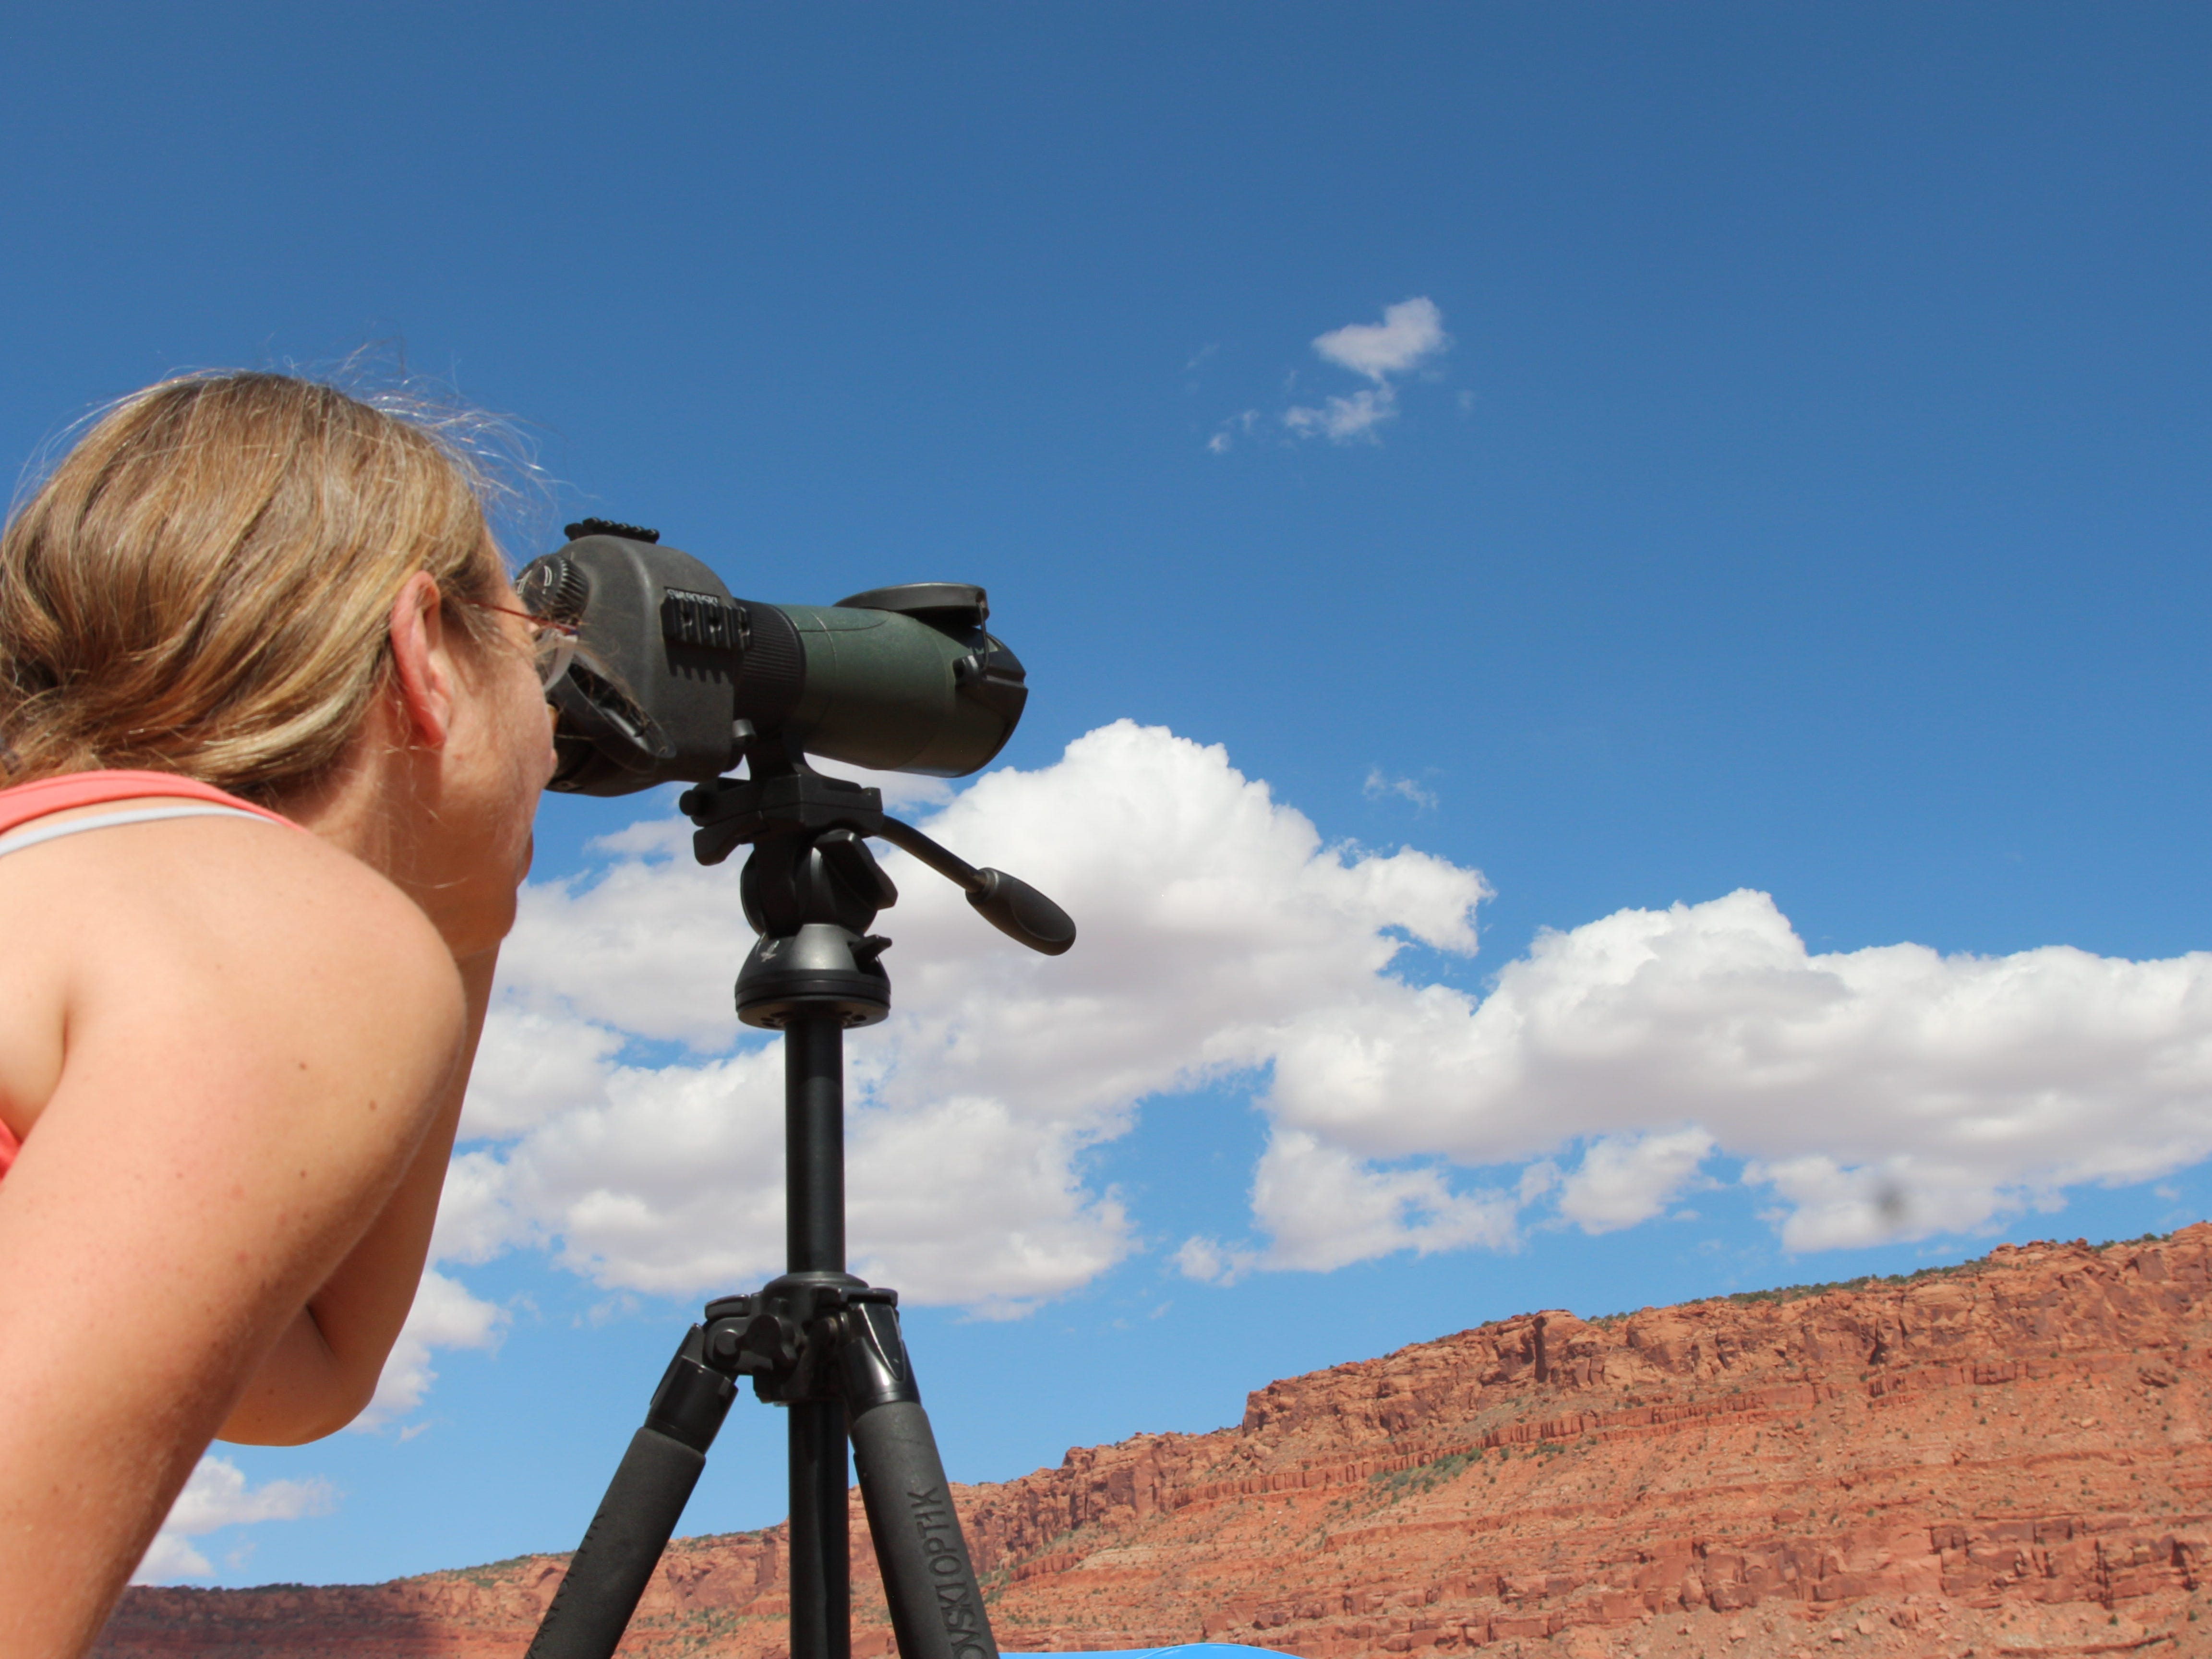 Ellen van Vugt peers through a viewing scope to look for California condors at Vermilion Cliffs National Monument on Sept. 22, 2018.